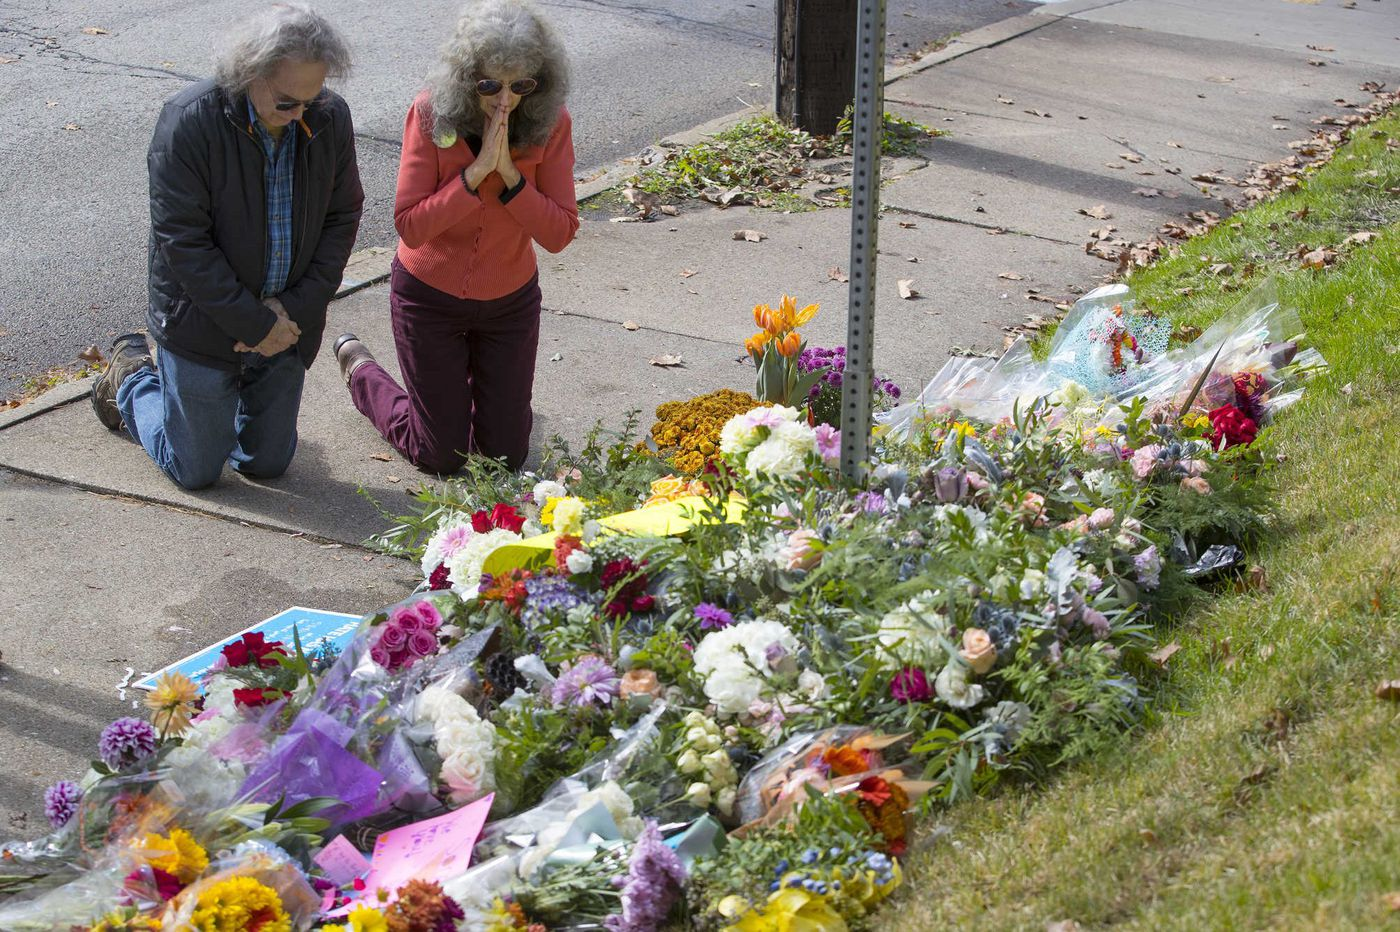 A day after the Pittsburgh shootings, 'a cloud of sadness' and notes of love